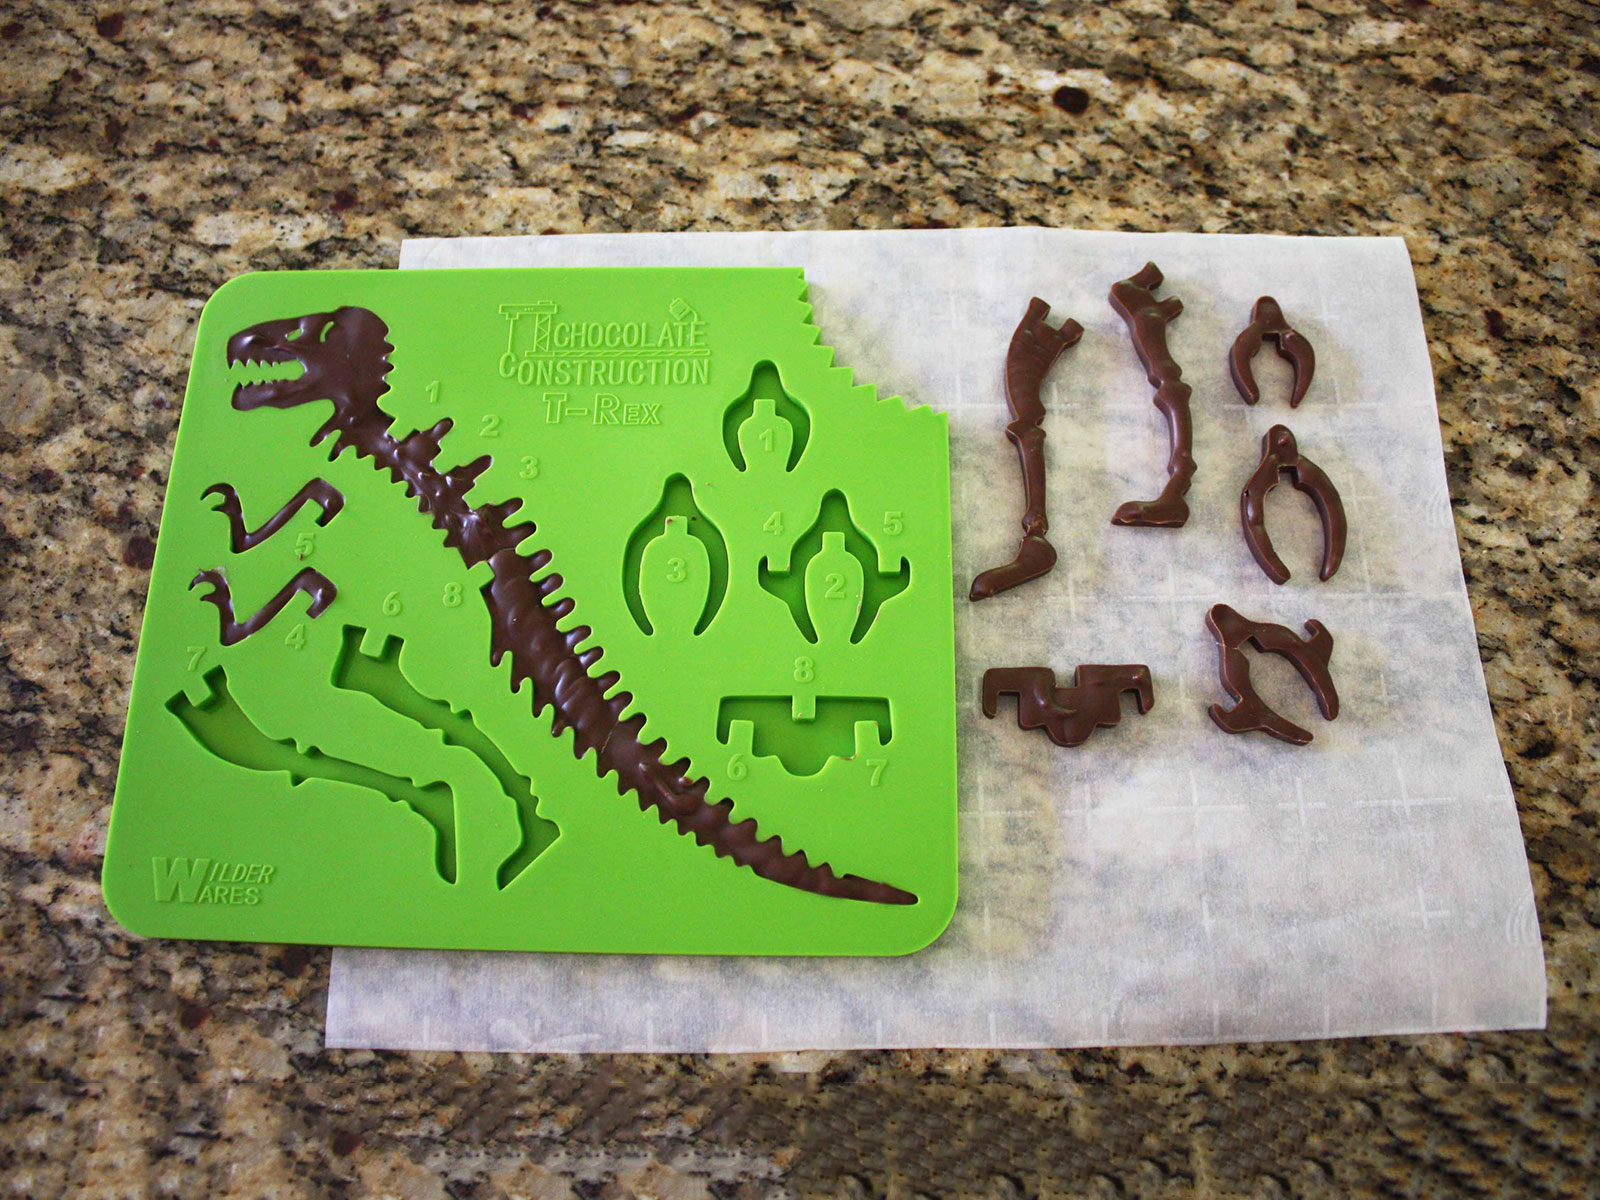 chocolate construction mold with pieces